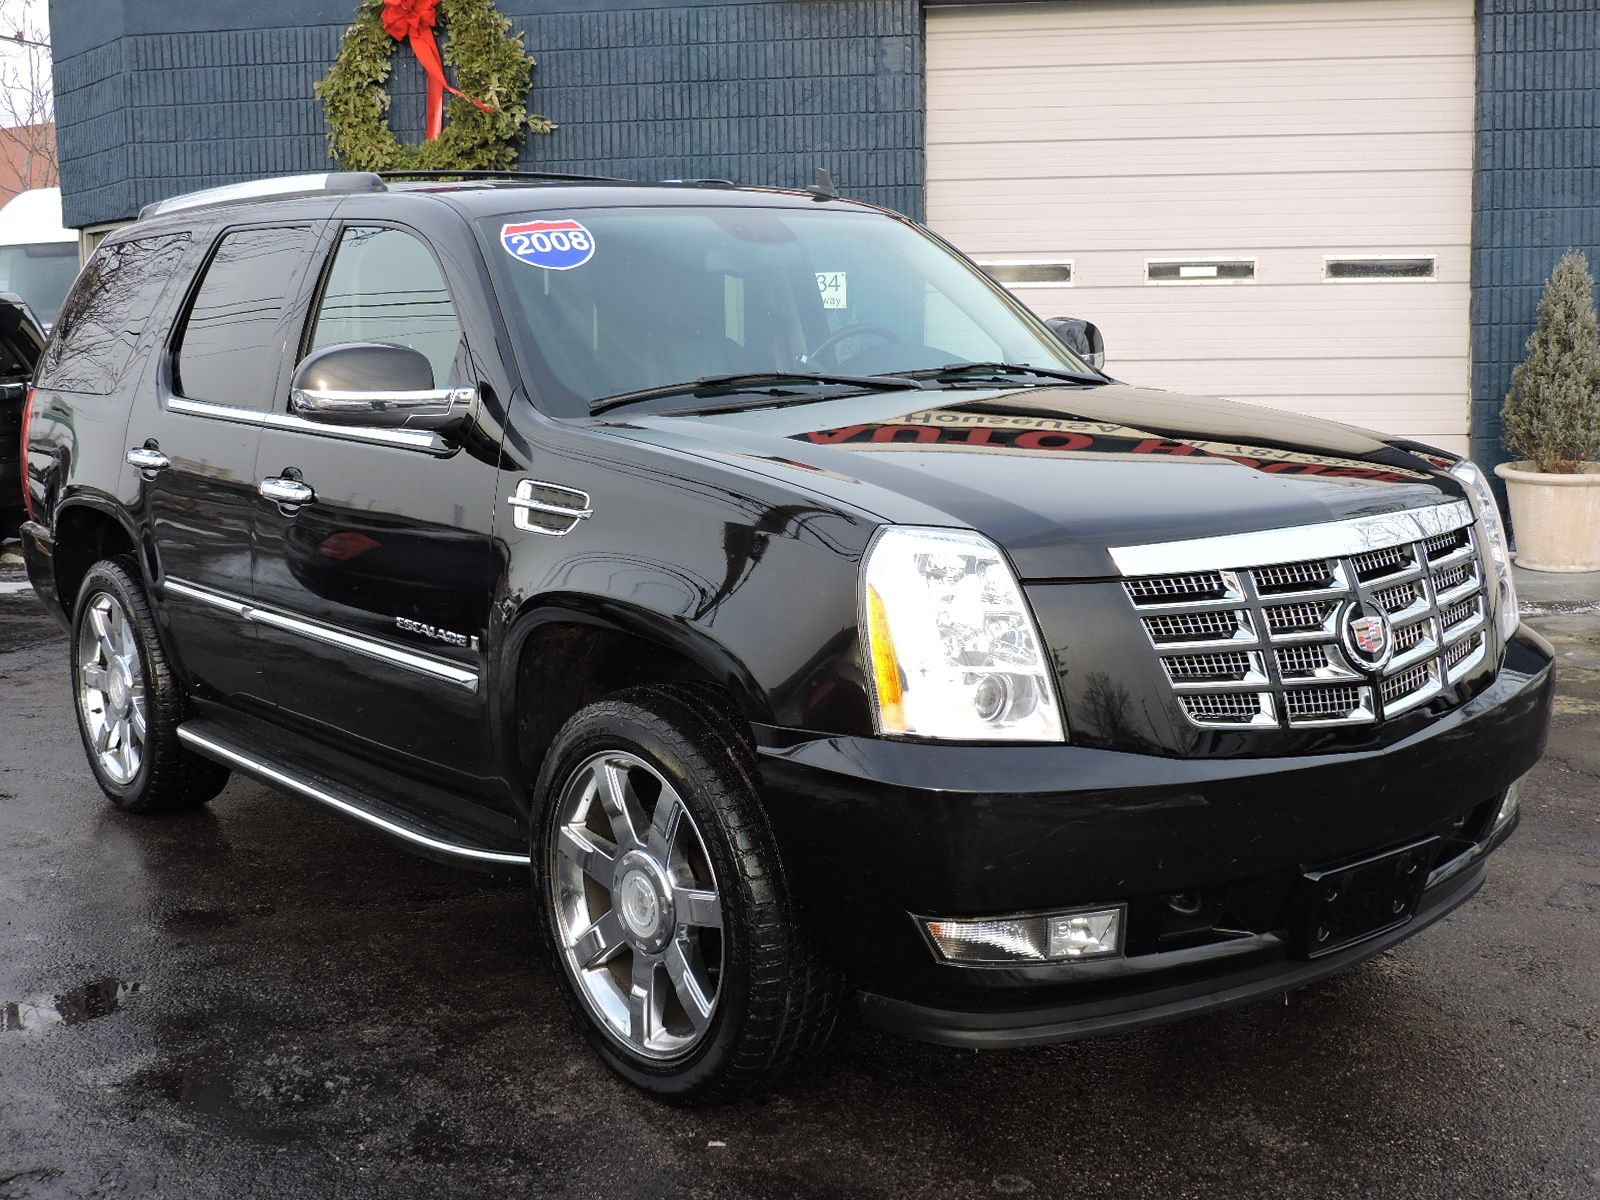 sale cadillac escalade of review used laurance suburban chevrolet yap for tahoe yukon vehicle expert gmc